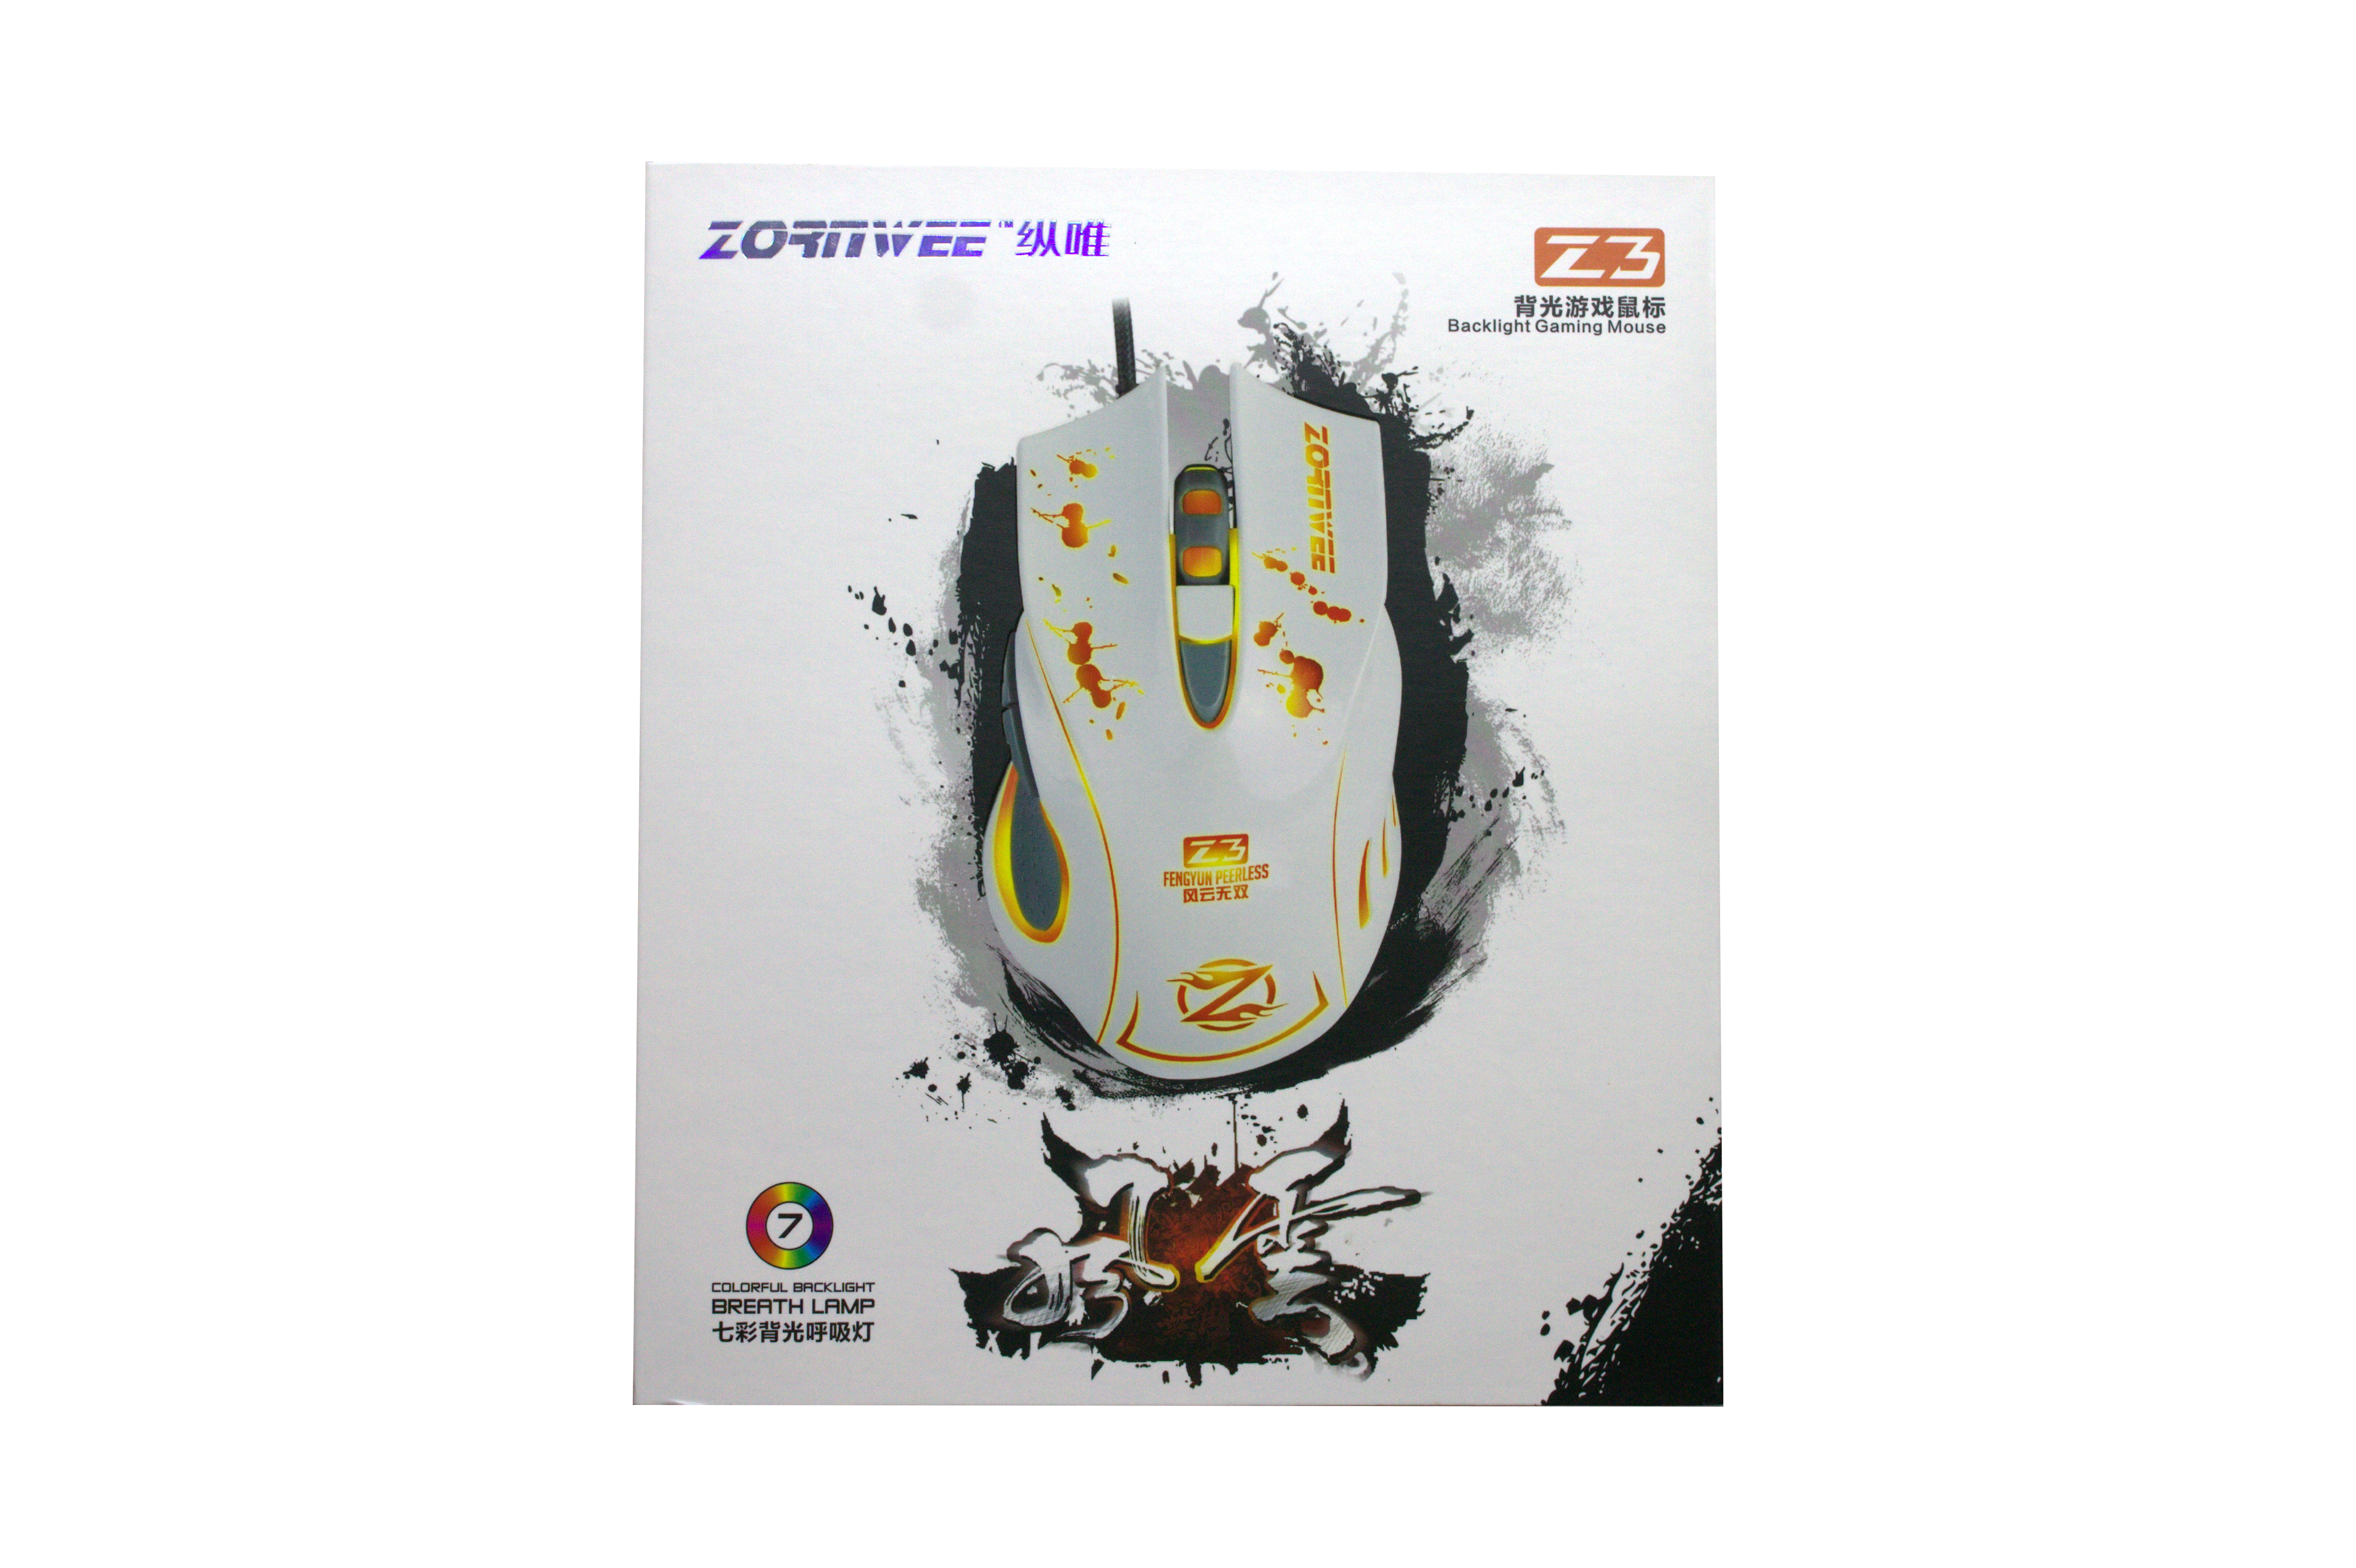 Gaming Mouse Colorfull Source 3D Rainbow Colors Backlight LED USB. Source ·